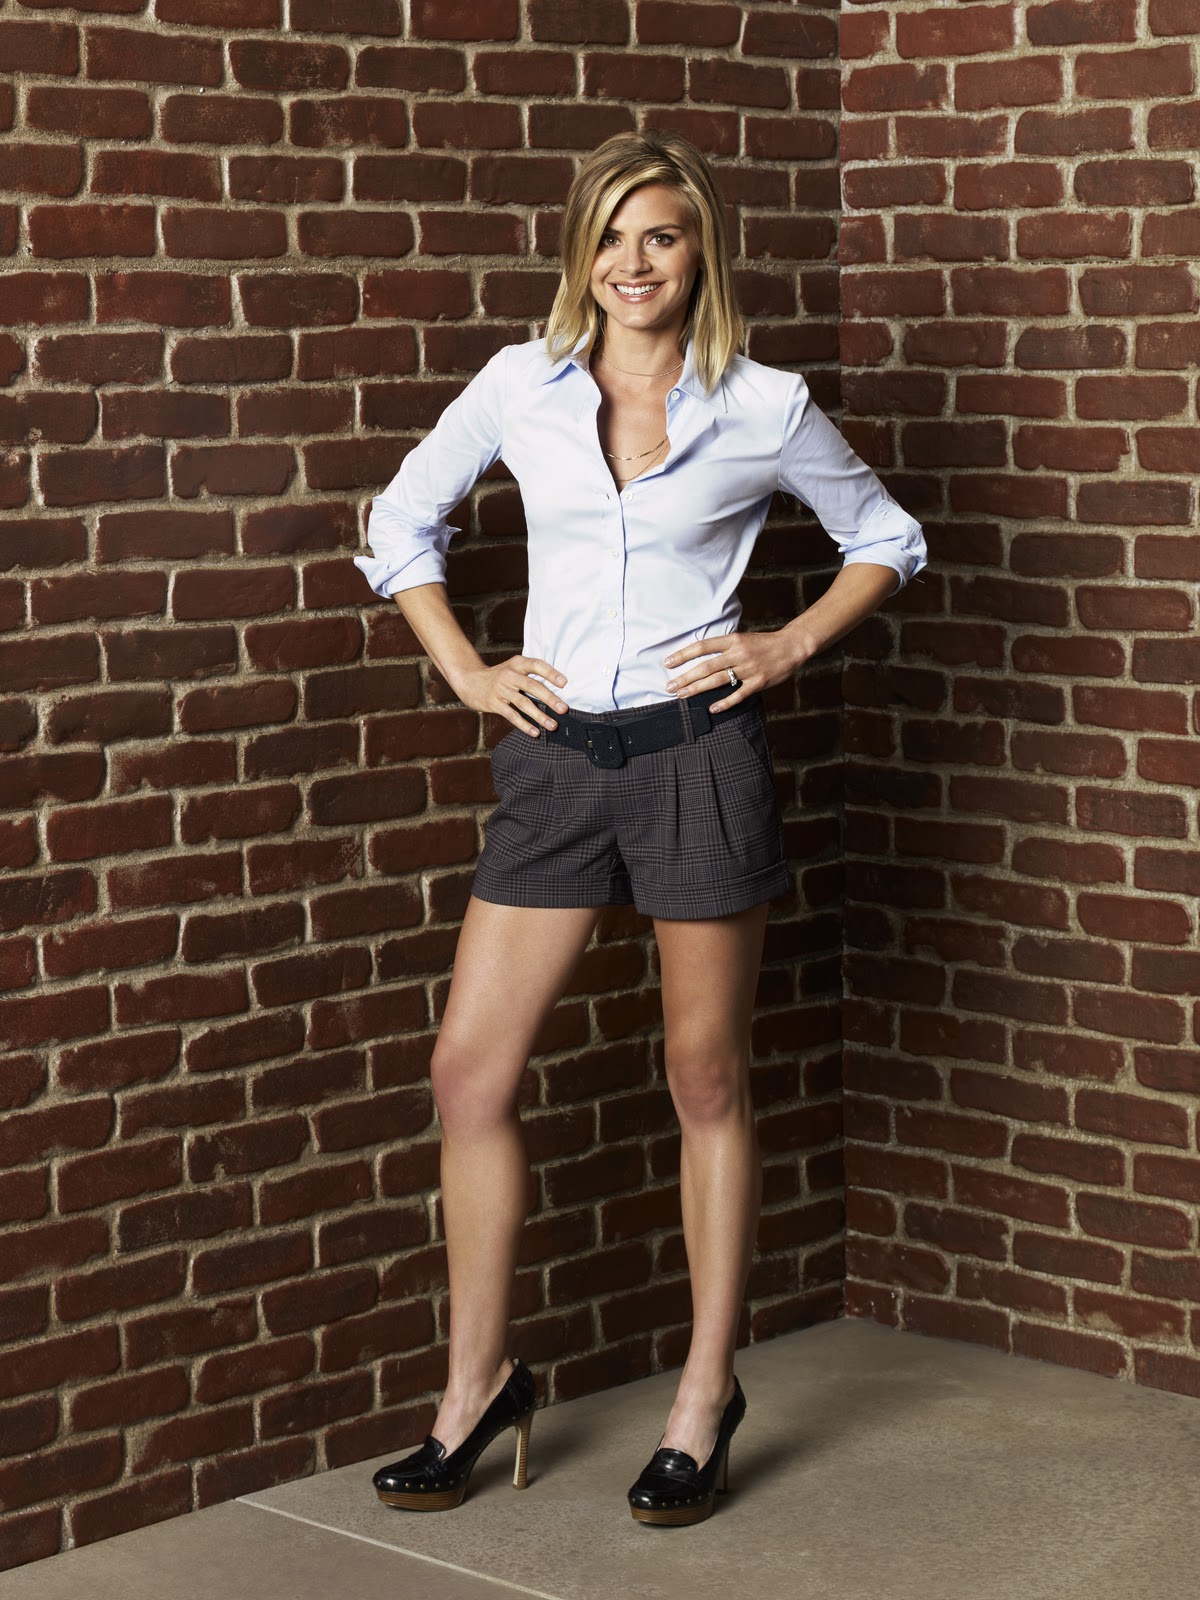 1200x1600 - Eliza Coupe Wallpapers 25